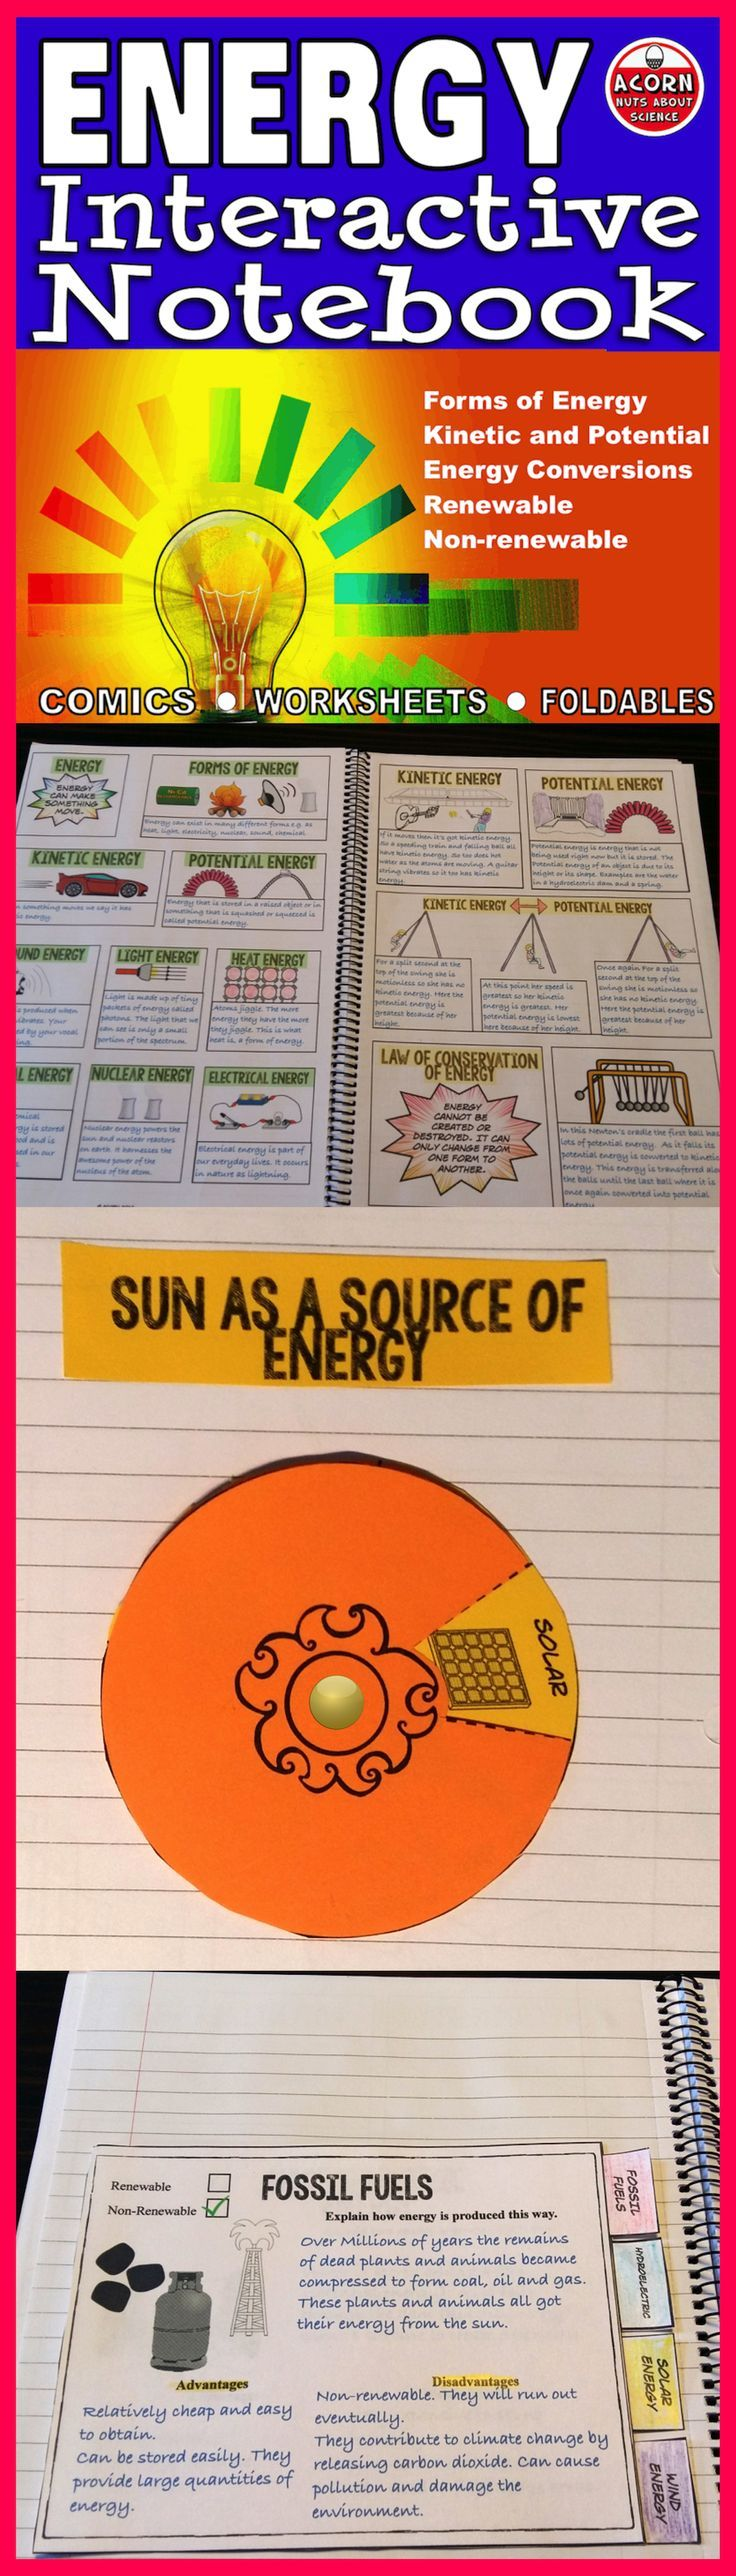 This differentiated energy interactive notebook covers forms of energy, energy conversion, kinetic and potential energy, renewable and non-renewable energy sources and much more. A powerpoint accompanies this. This INB is 34 pages with a 13 slide powerpoint.